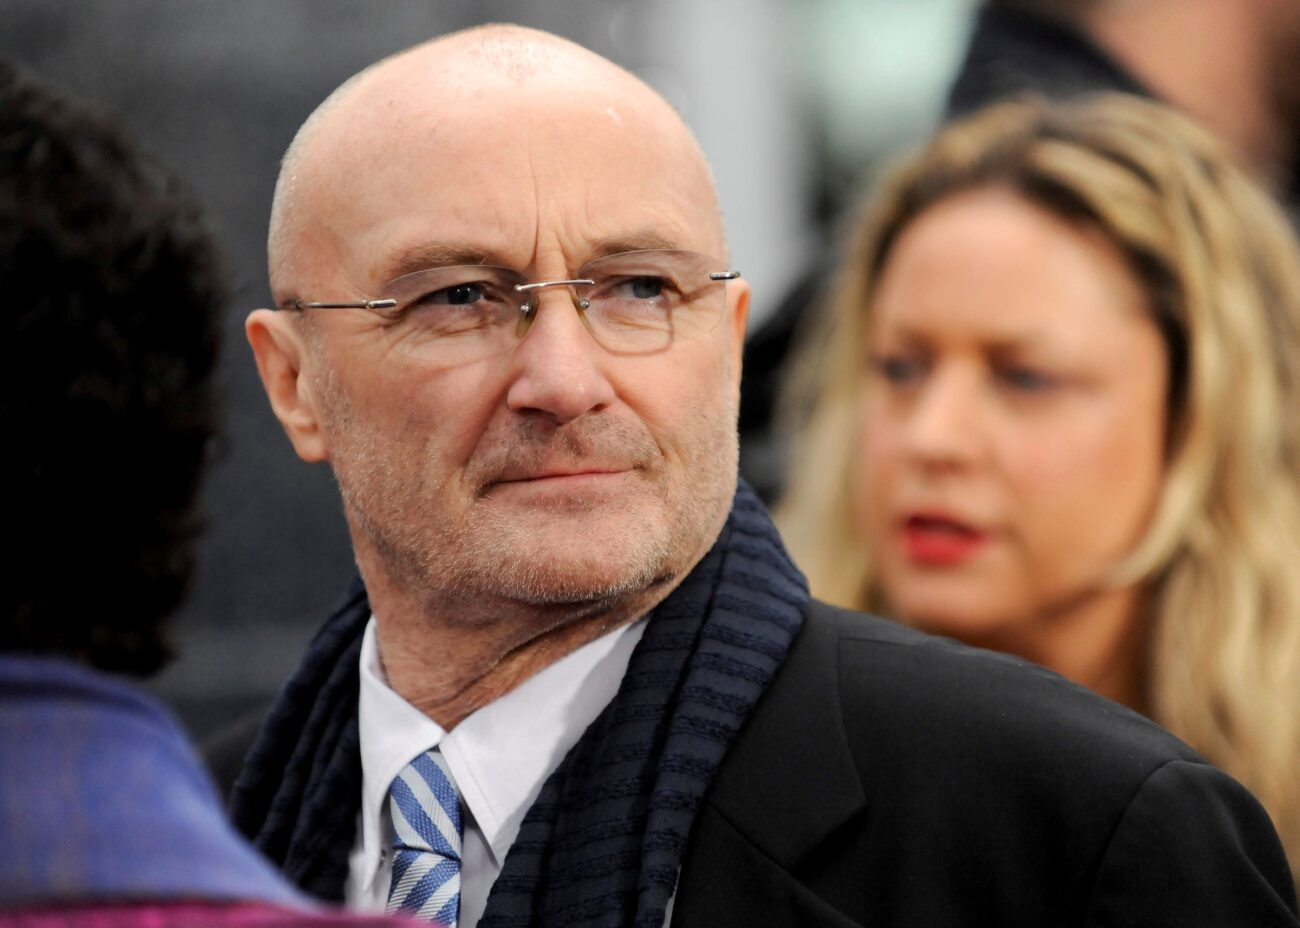 Phil Collins has been suffering from some health issues. Uncover the story and see if he will perform with Genesis again on the band's reunion tour.